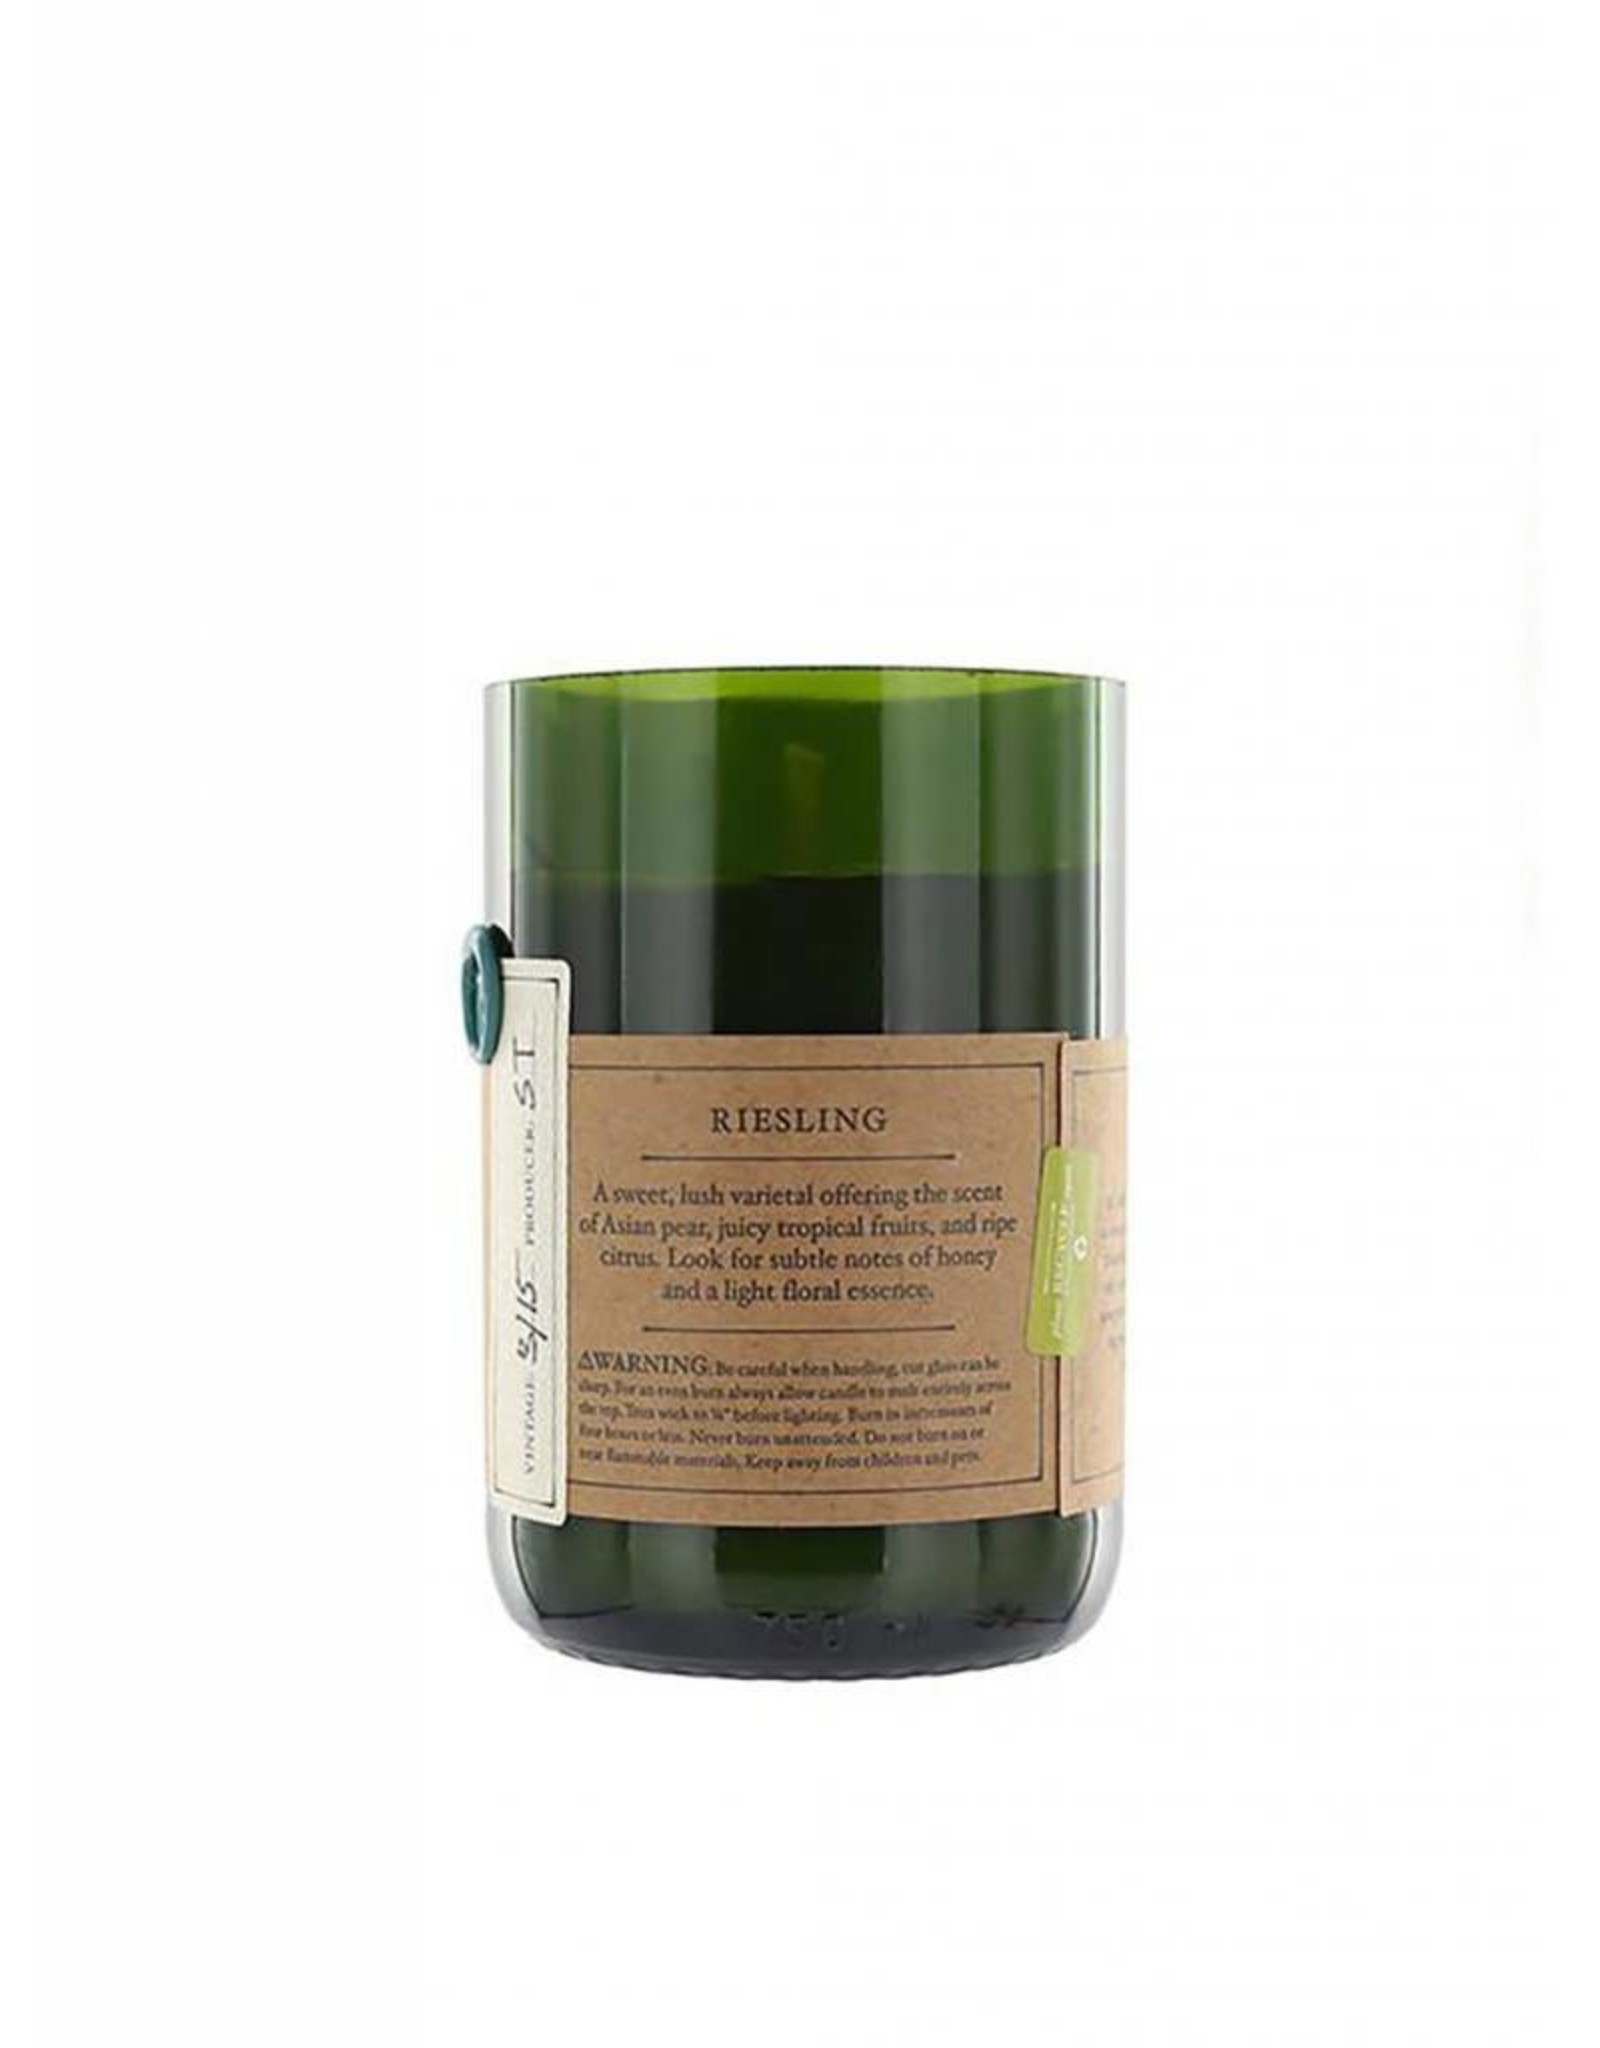 Formatical Rewined Candle